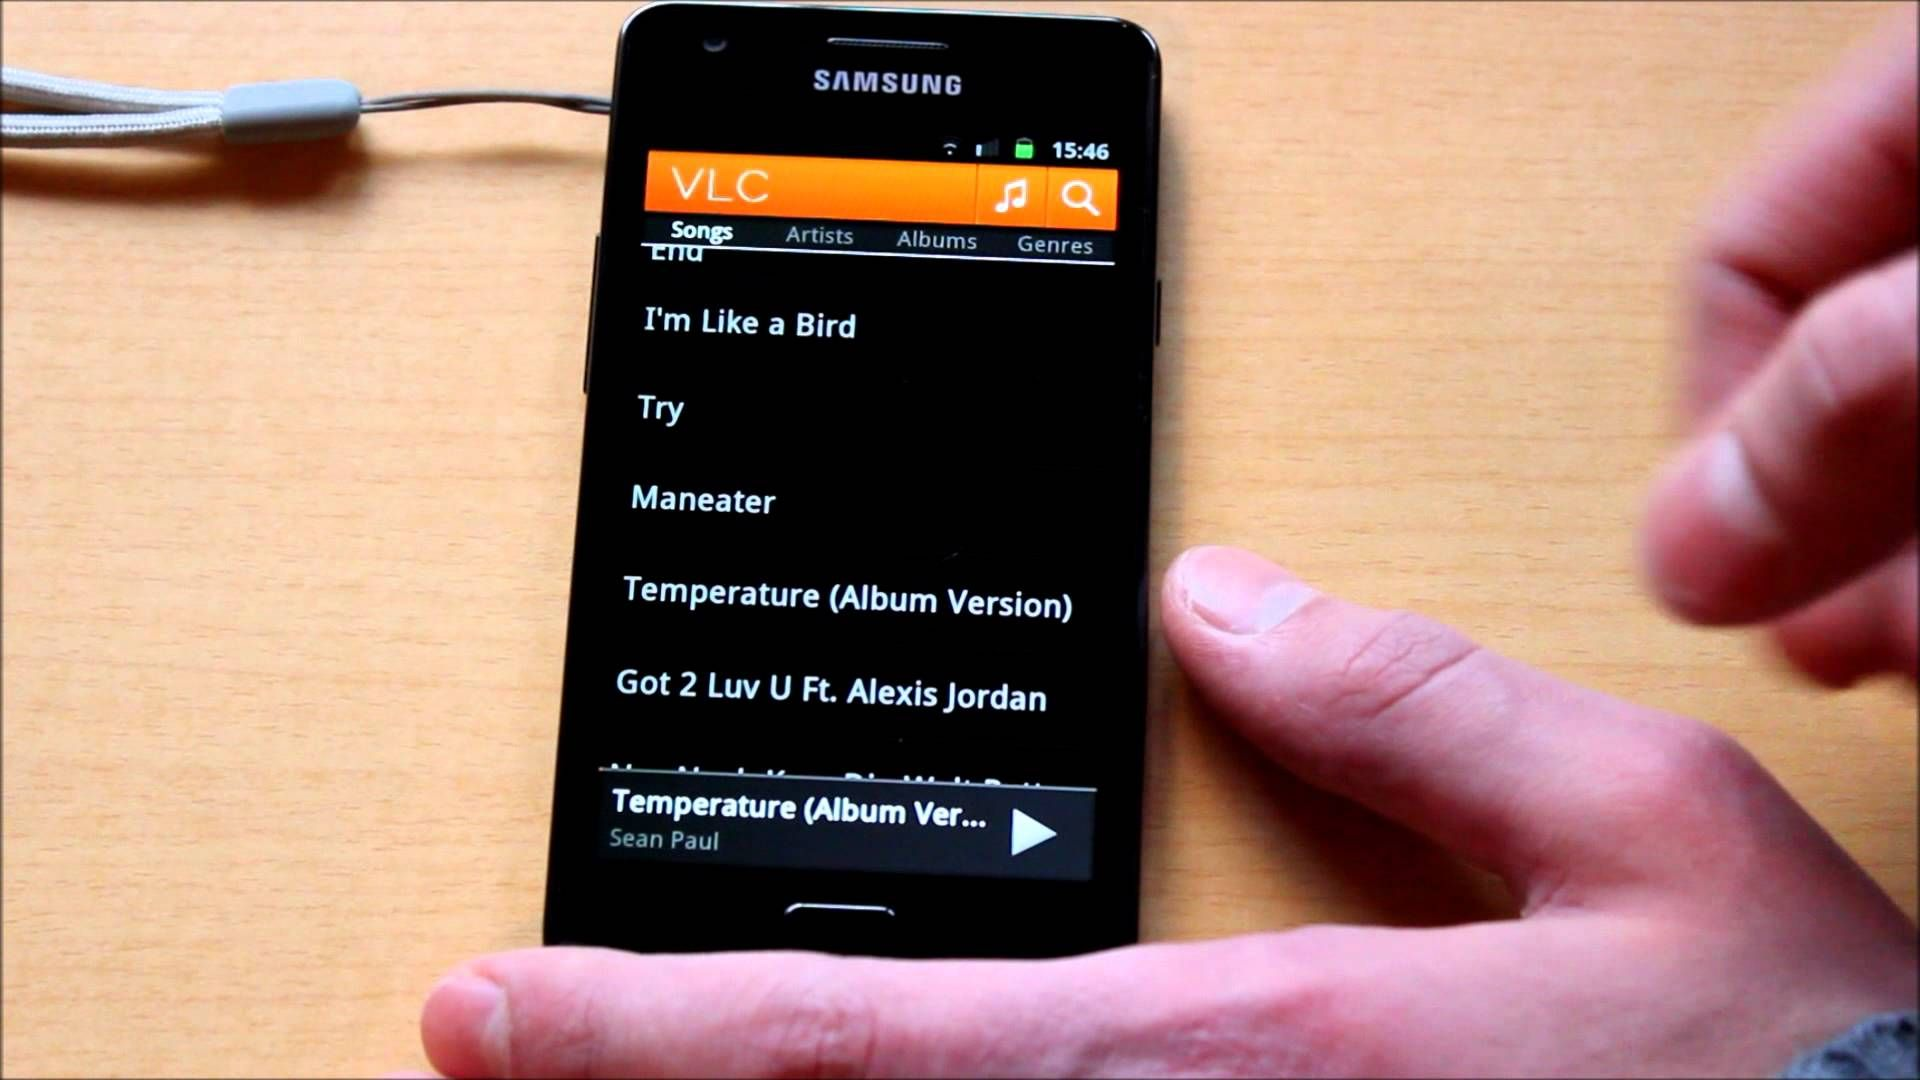 Download VLC Free Apk App, Android apps, System